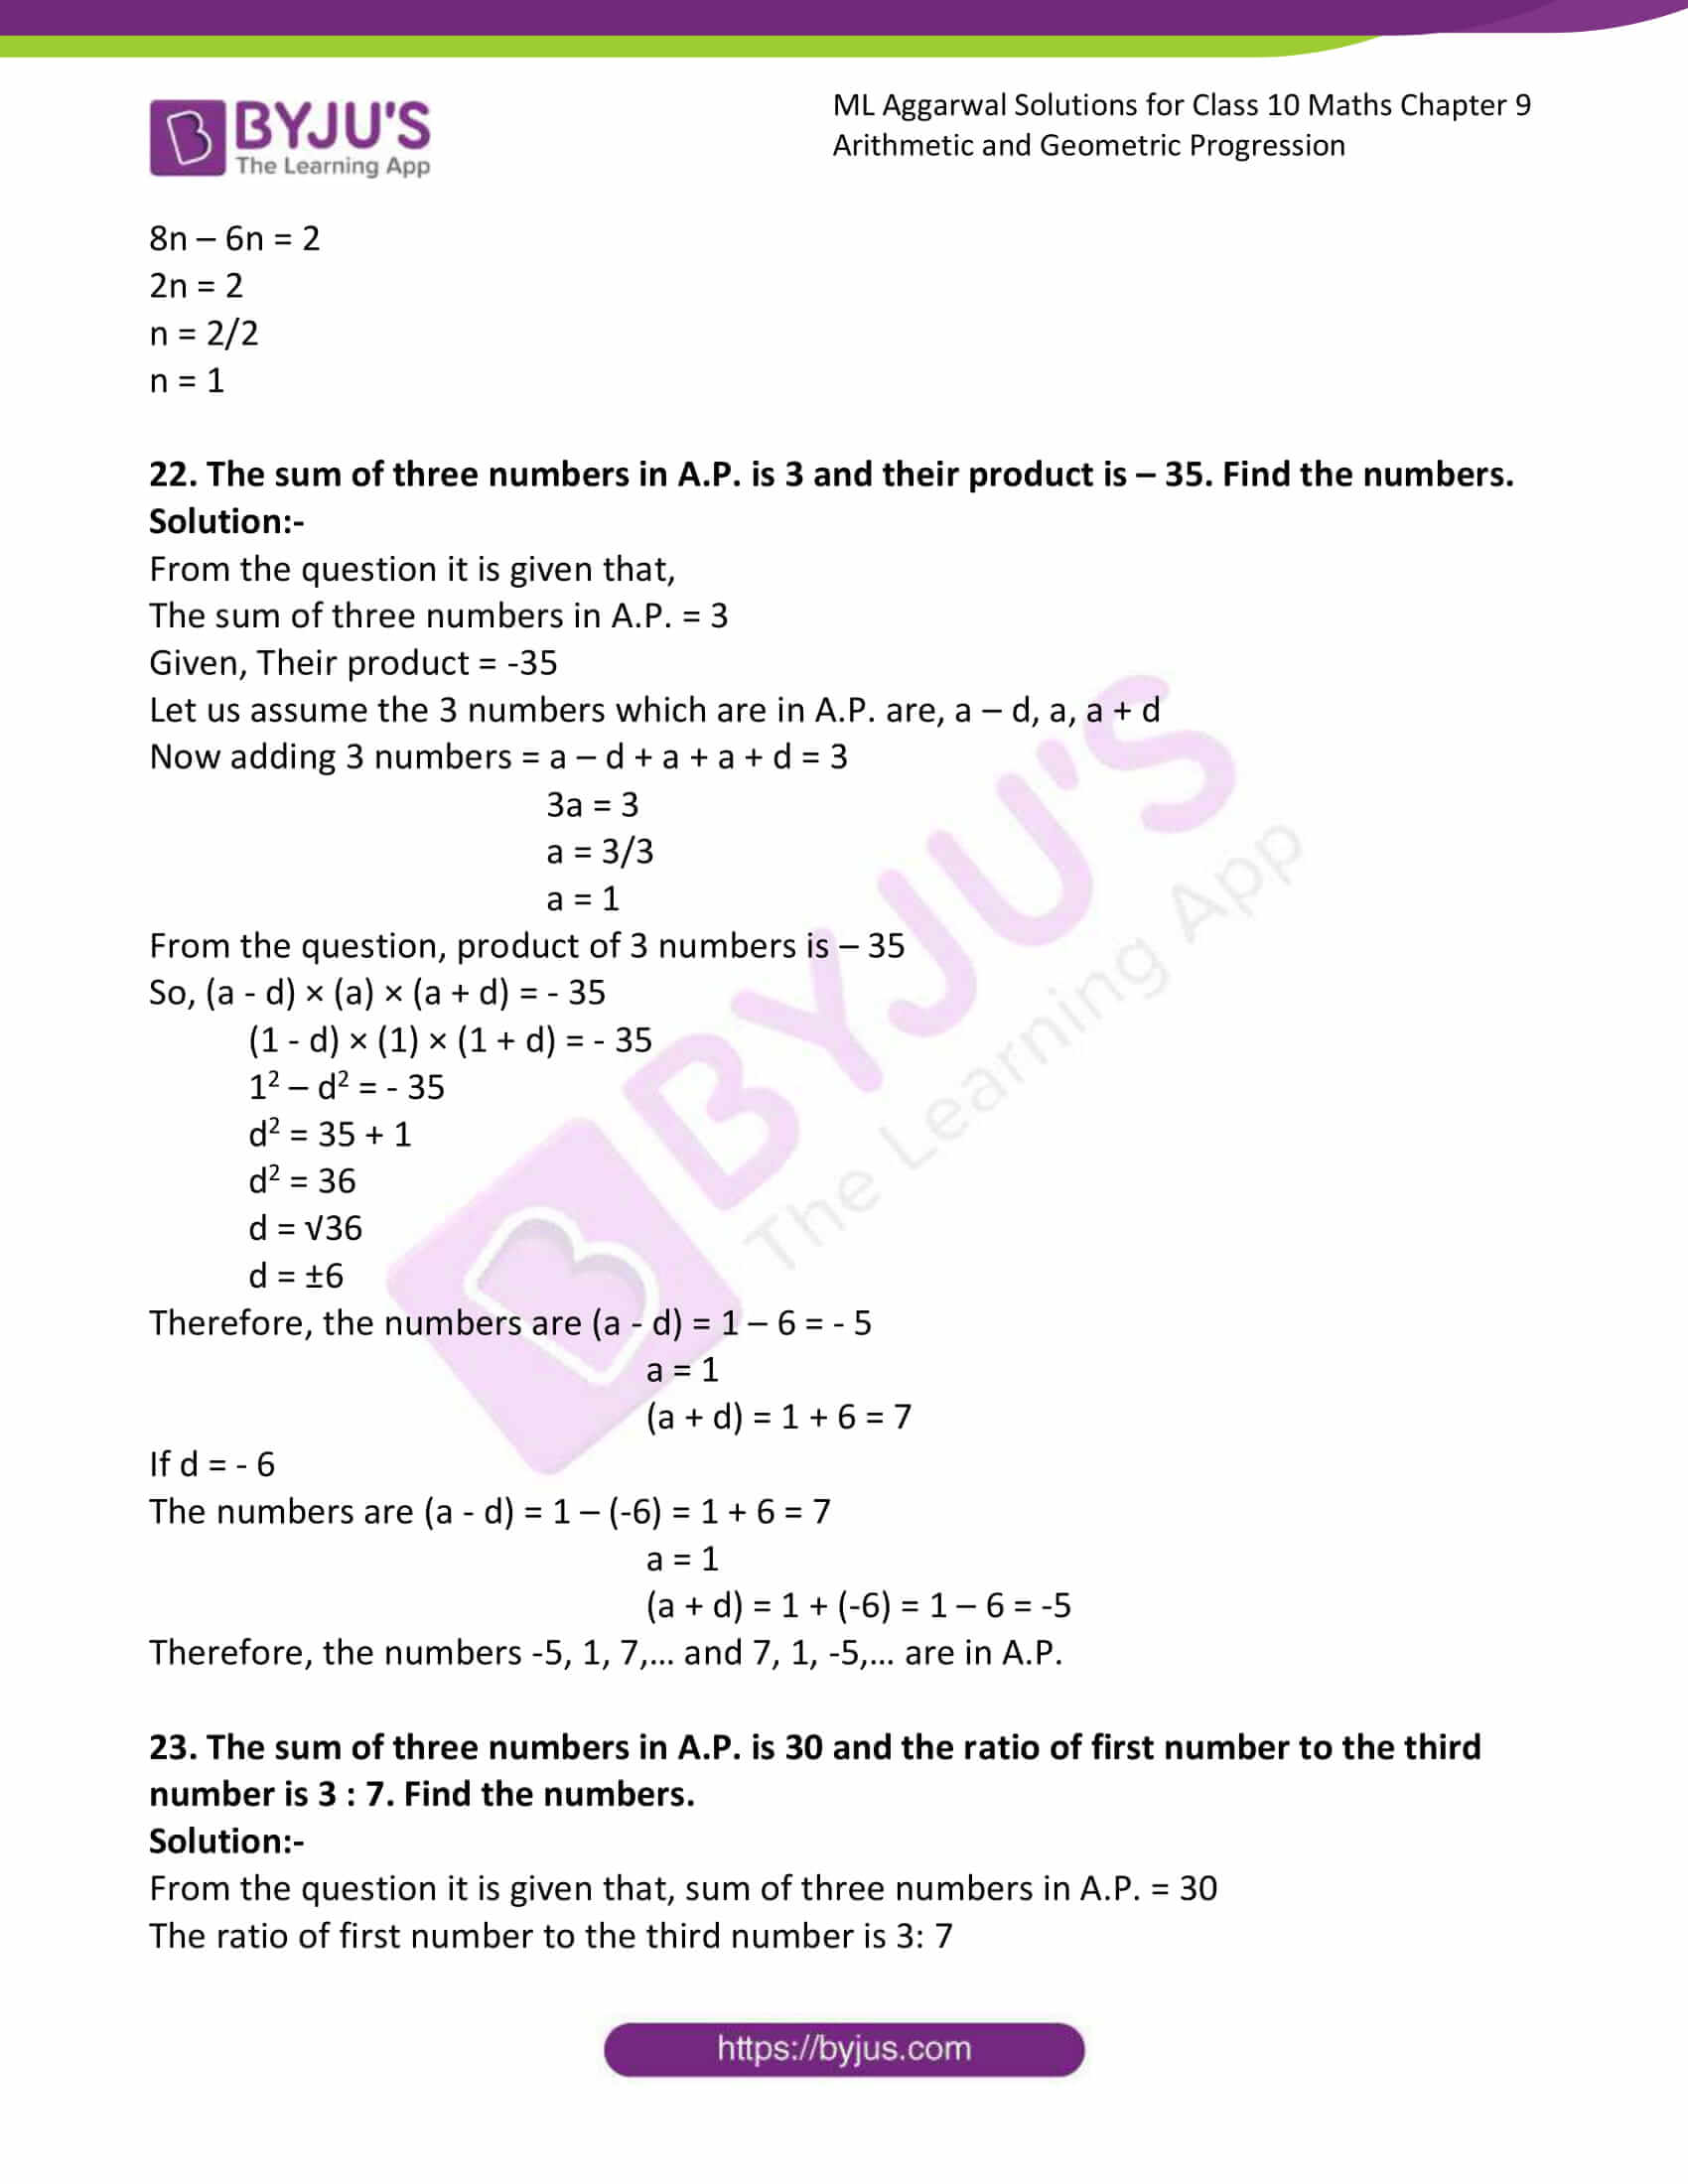 ml aggarwal solutions class 10 maths chapter 9 23